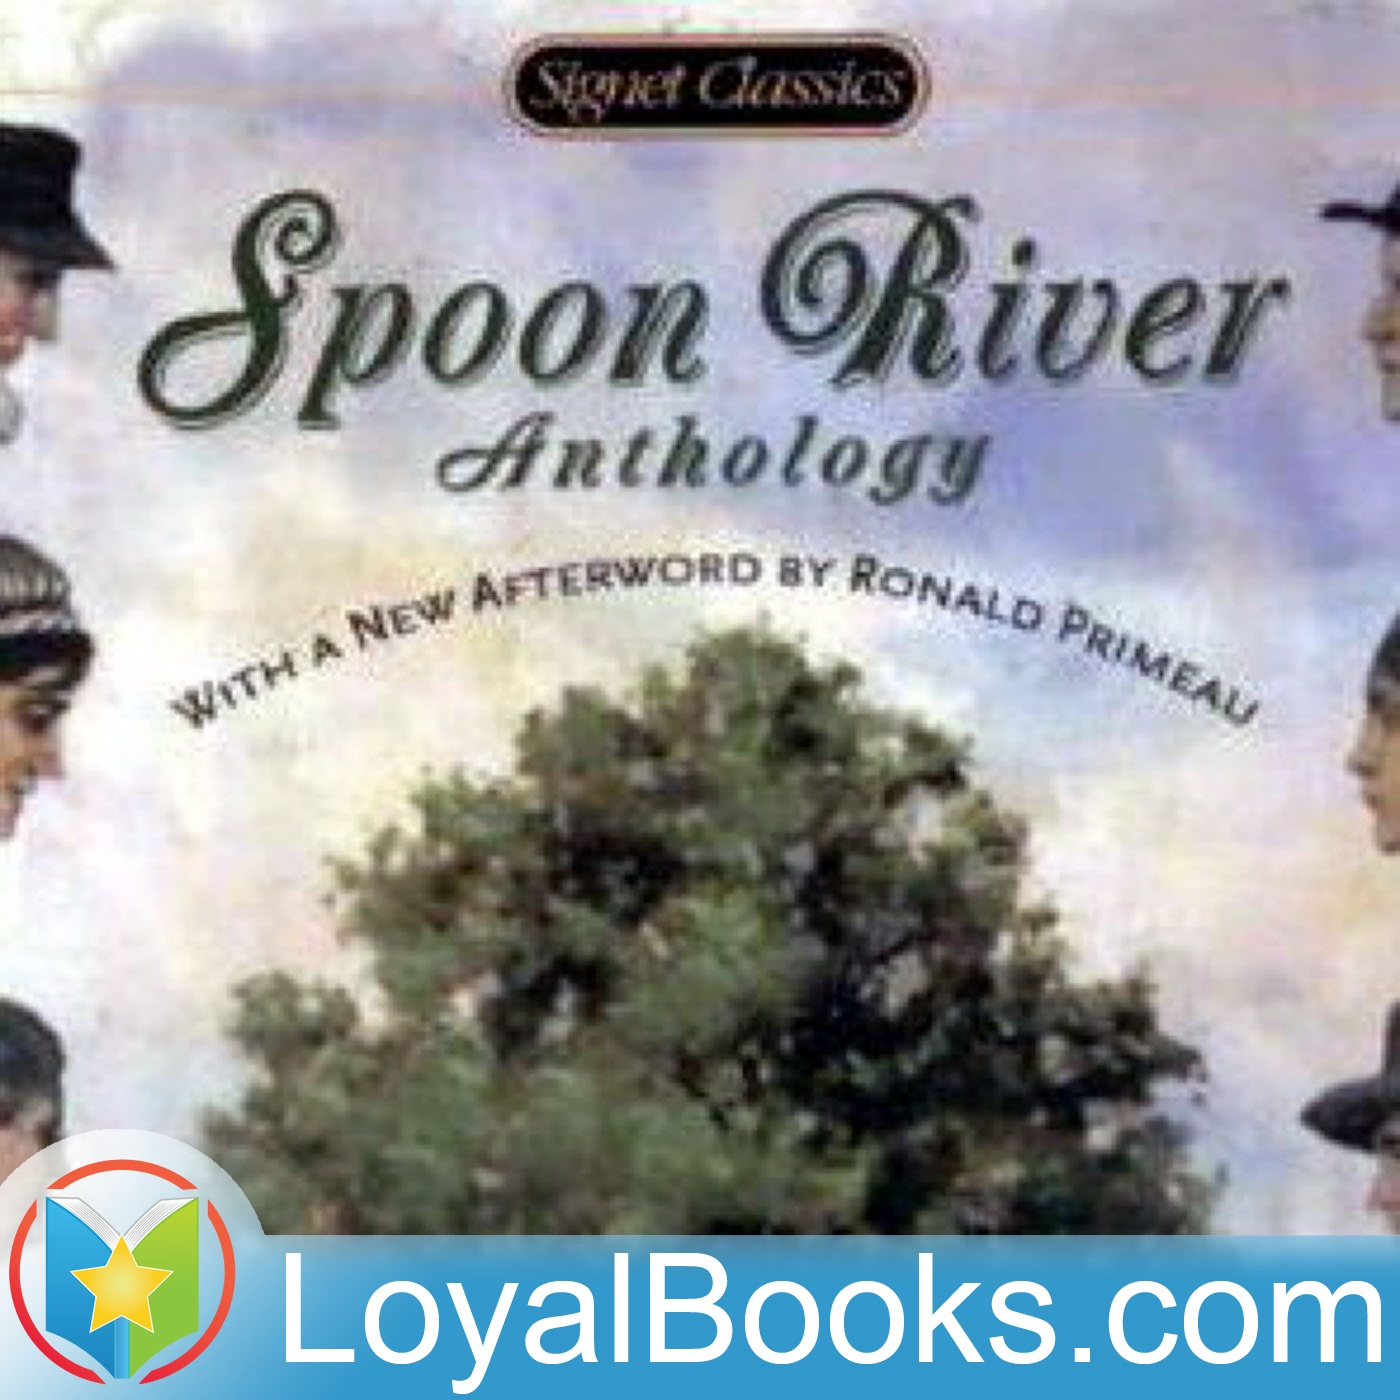 <![CDATA[Spoon River Anthology by Edgar Lee Masters]]>